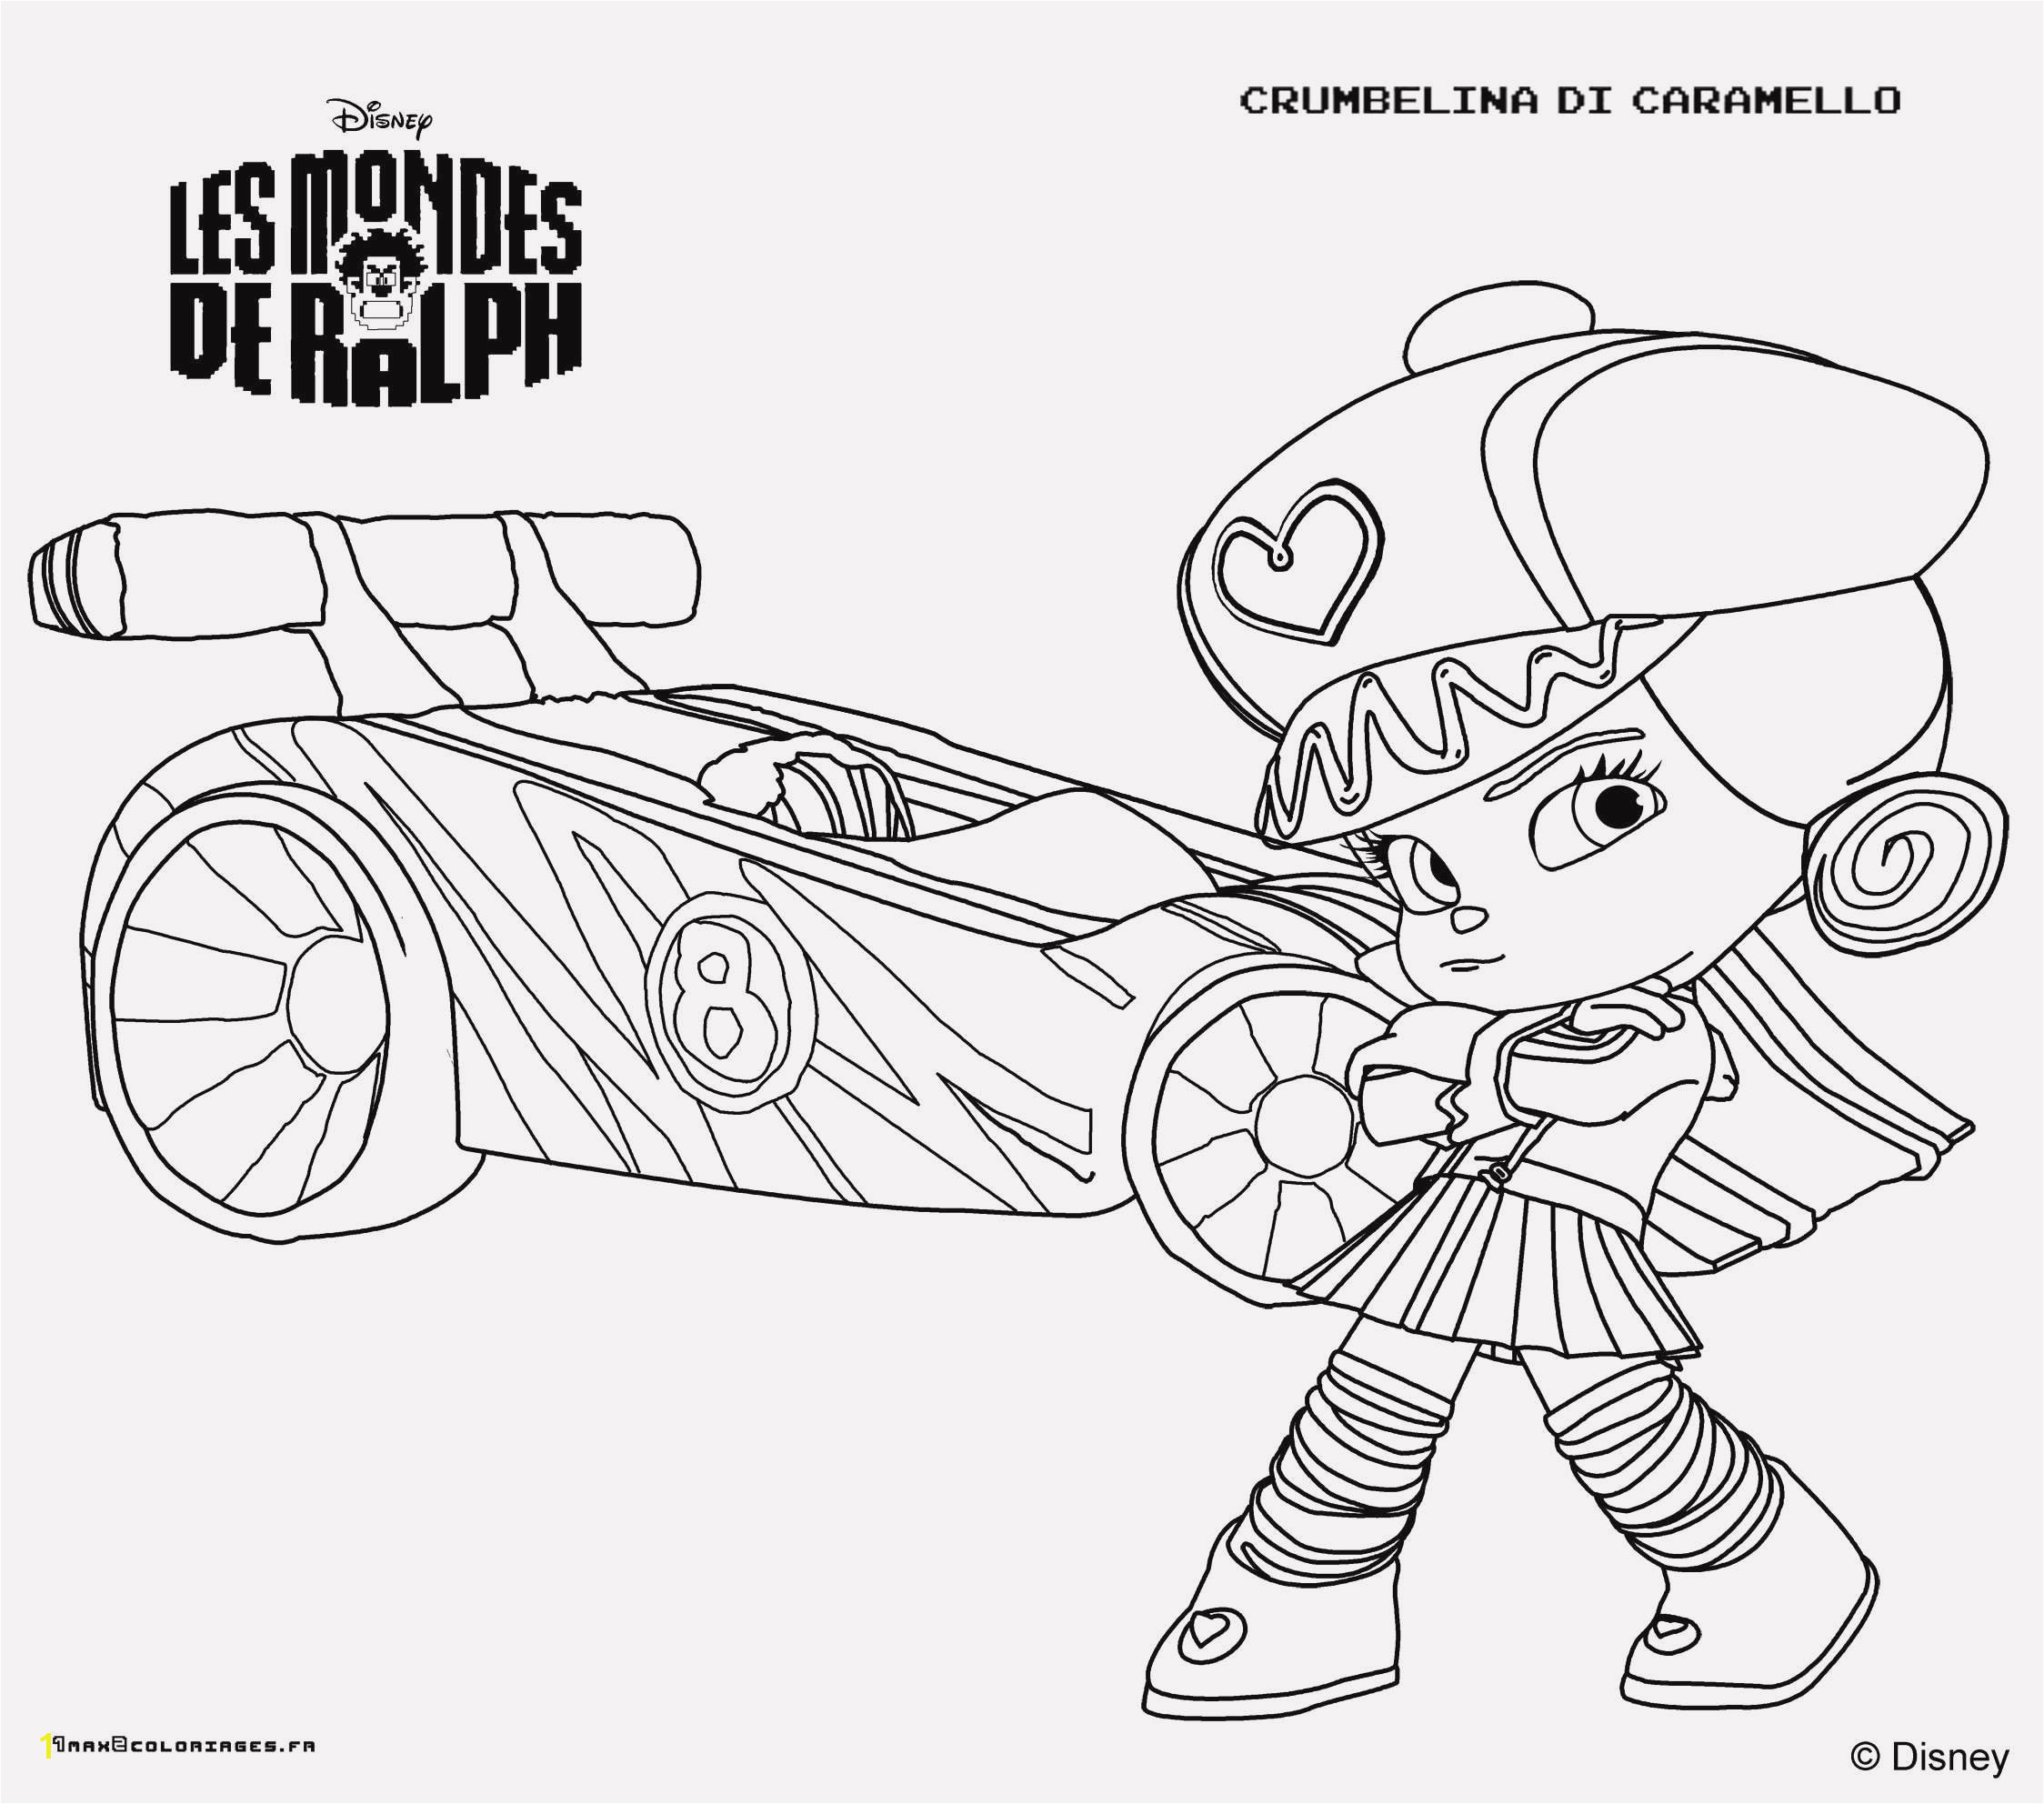 Disney Princess Printable Coloring Book Unique New Chuggington Coloring Pages Free Printabl Pin Od Tracy Jefferies